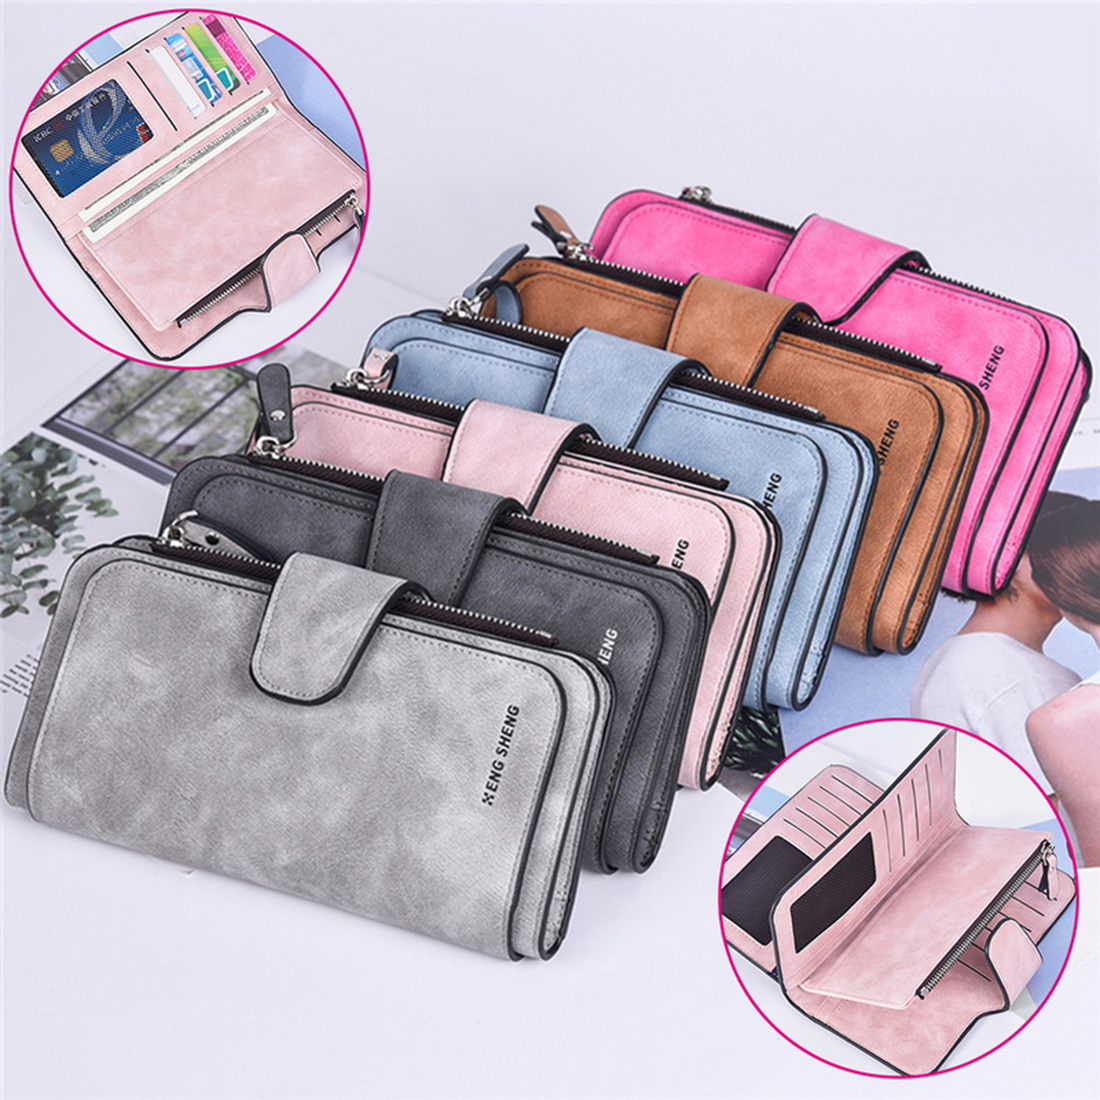 Ladys Purse Three-Fold Long-Style Frosted Card Bag Clasp Multi-Function Wallet Multi-Card WalletLadys Purse Three-Fold Long-Style Frosted Card Bag Clasp Multi-Function Wallet Multi-Card Wallet